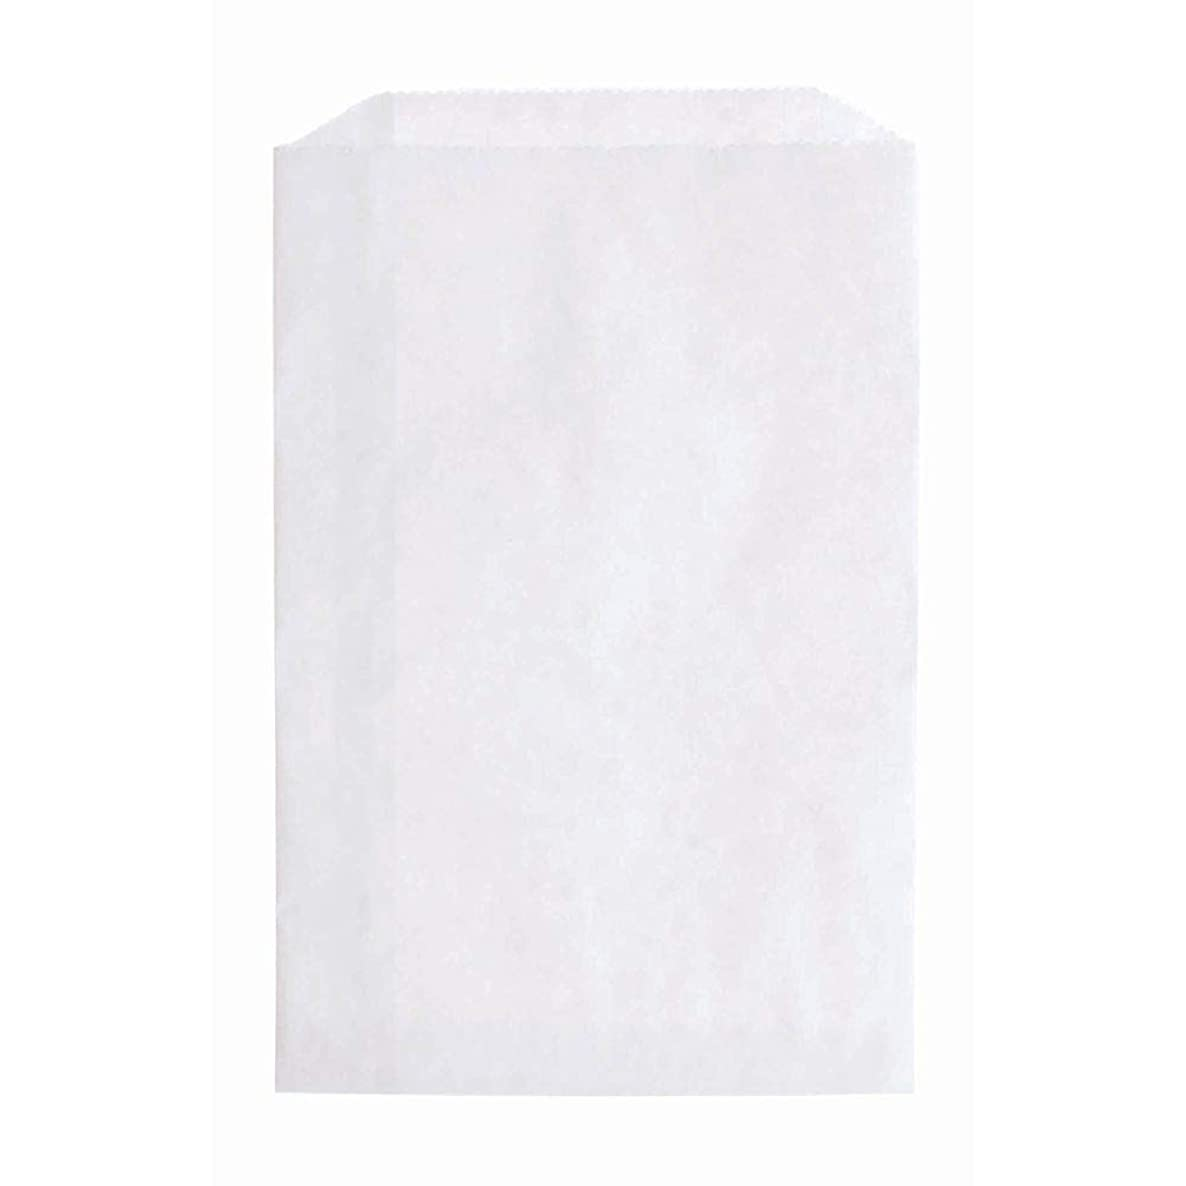 N'ice Packaging 200 White Flat Paper Bags Good for Candy, Cookies, Small Gift, Crafts, Party Favor, Sandwich, or Merchandising - no Gussett (White, 5